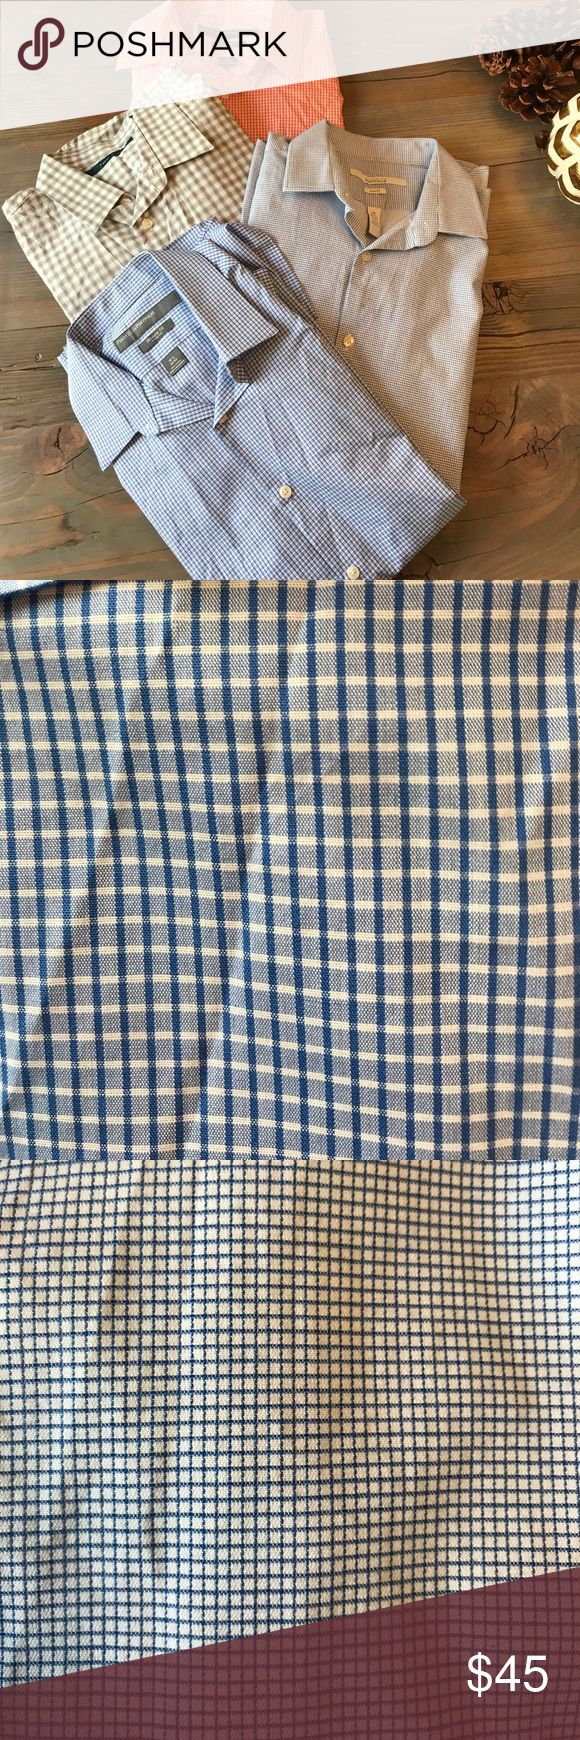 Perry Ellis dress shirt bundle. Men's Perry Ellis dress shirt bundle. 4 shirts all size medium. Hardly worn and in good condition! All cuffs have two buttons to make adjustable. No missing buttons or stains. Colors: royal blue & white, blue & white, black & white, orange & white. Perry Ellis Shirts Dress Shirts